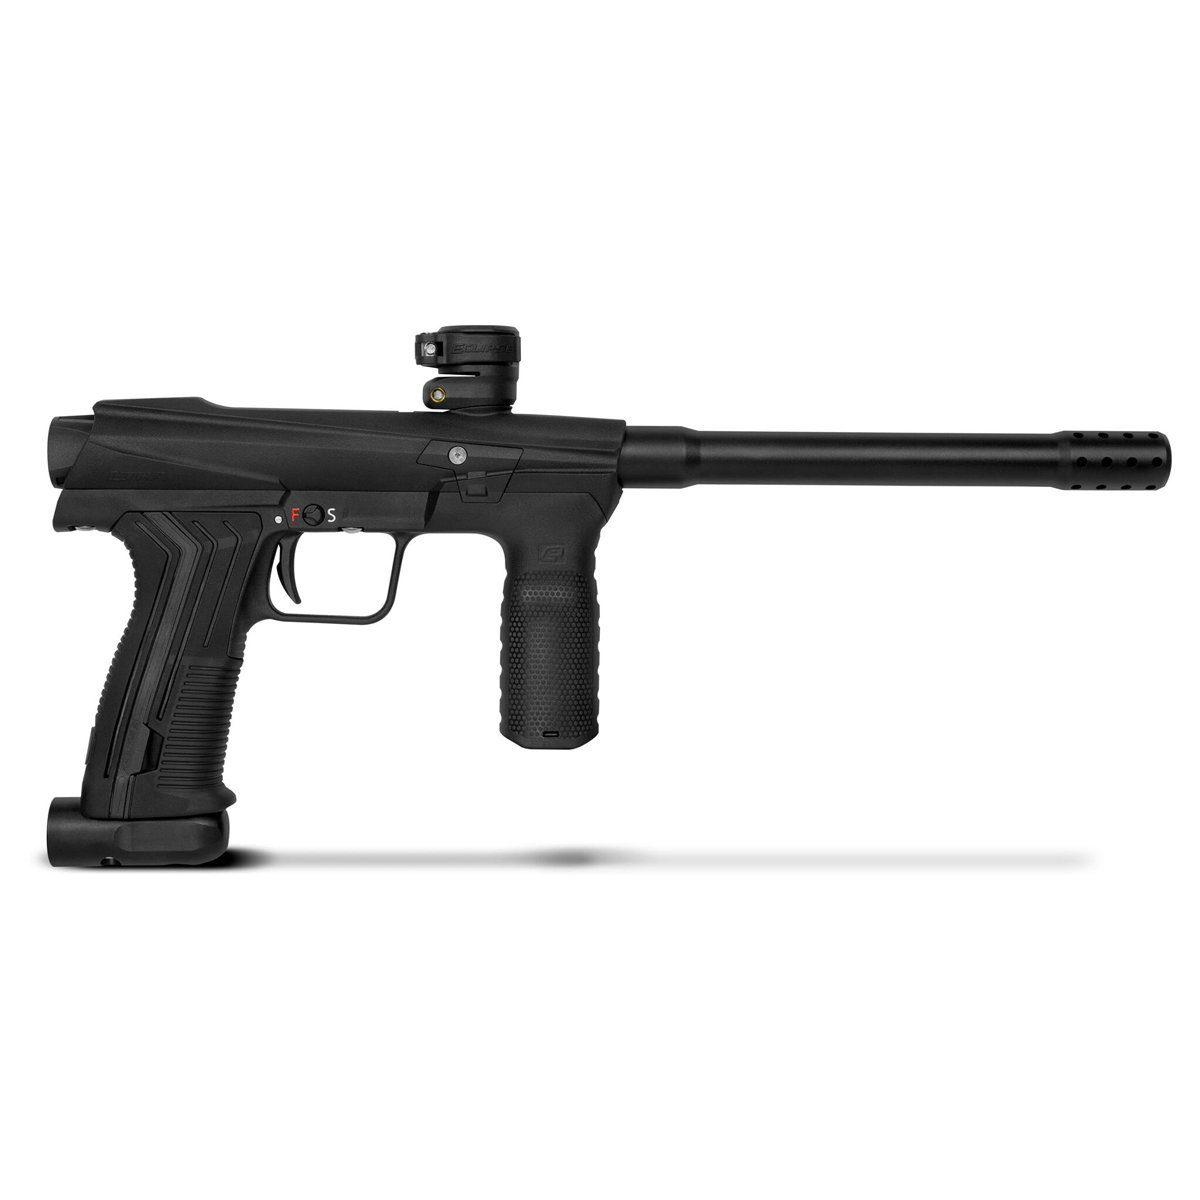 View larger image of Eclipse Etha EMEK 100 Paintball Gun